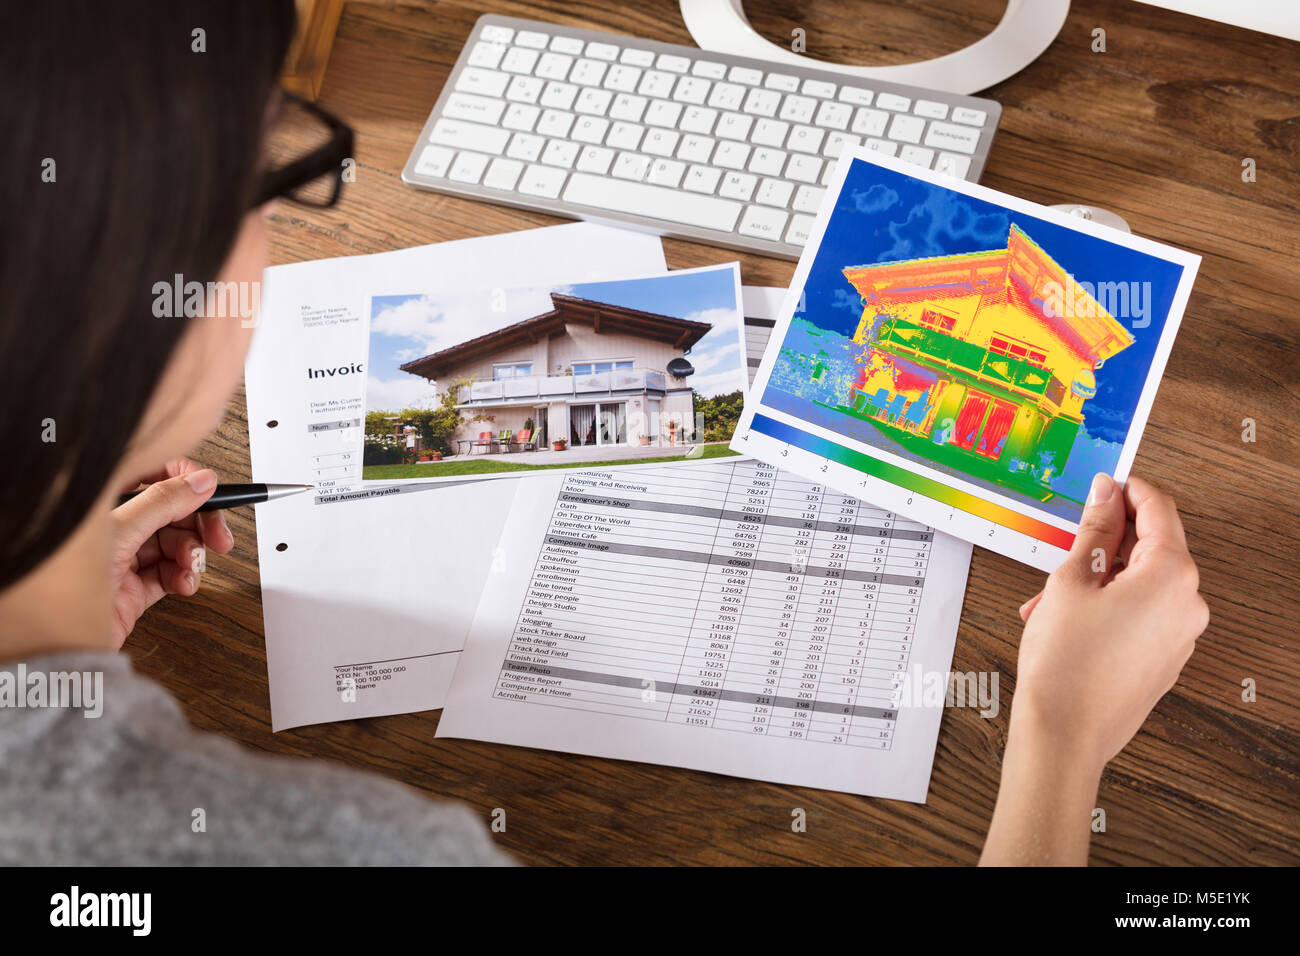 Close-up Of A Person Analyzing The Heat Loss And Energy Efficiency Of A House - Stock Image